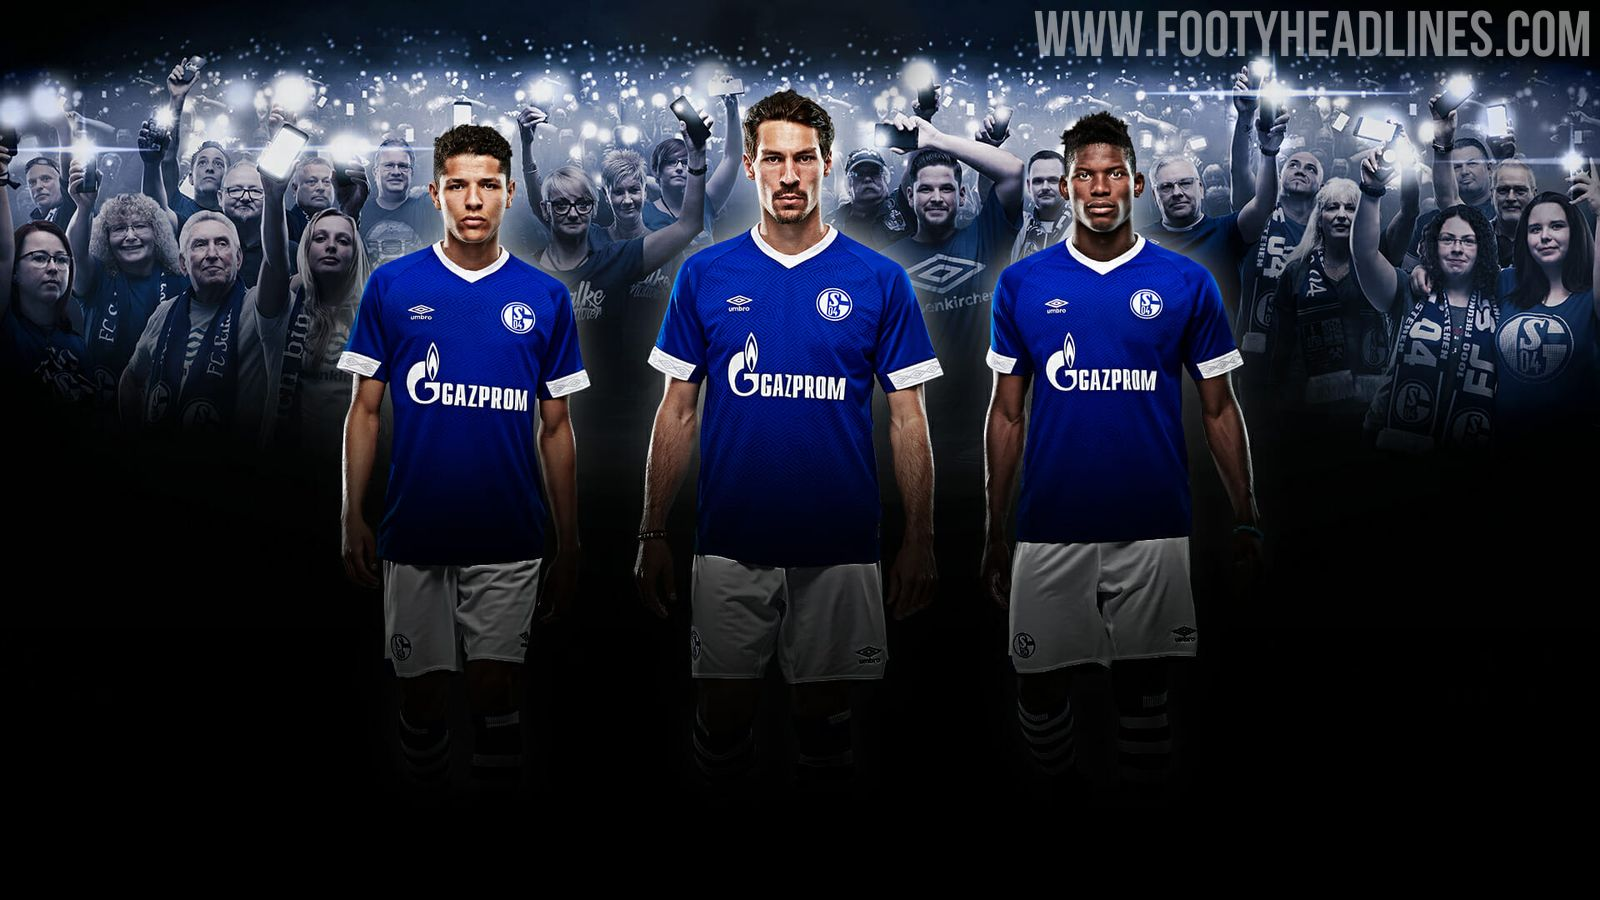 10b9329654 The shorts of the Umbro Schalke 2018-19 home kit are white with a blue  stripe along the lower rear, while the socks are blue with white hoops.